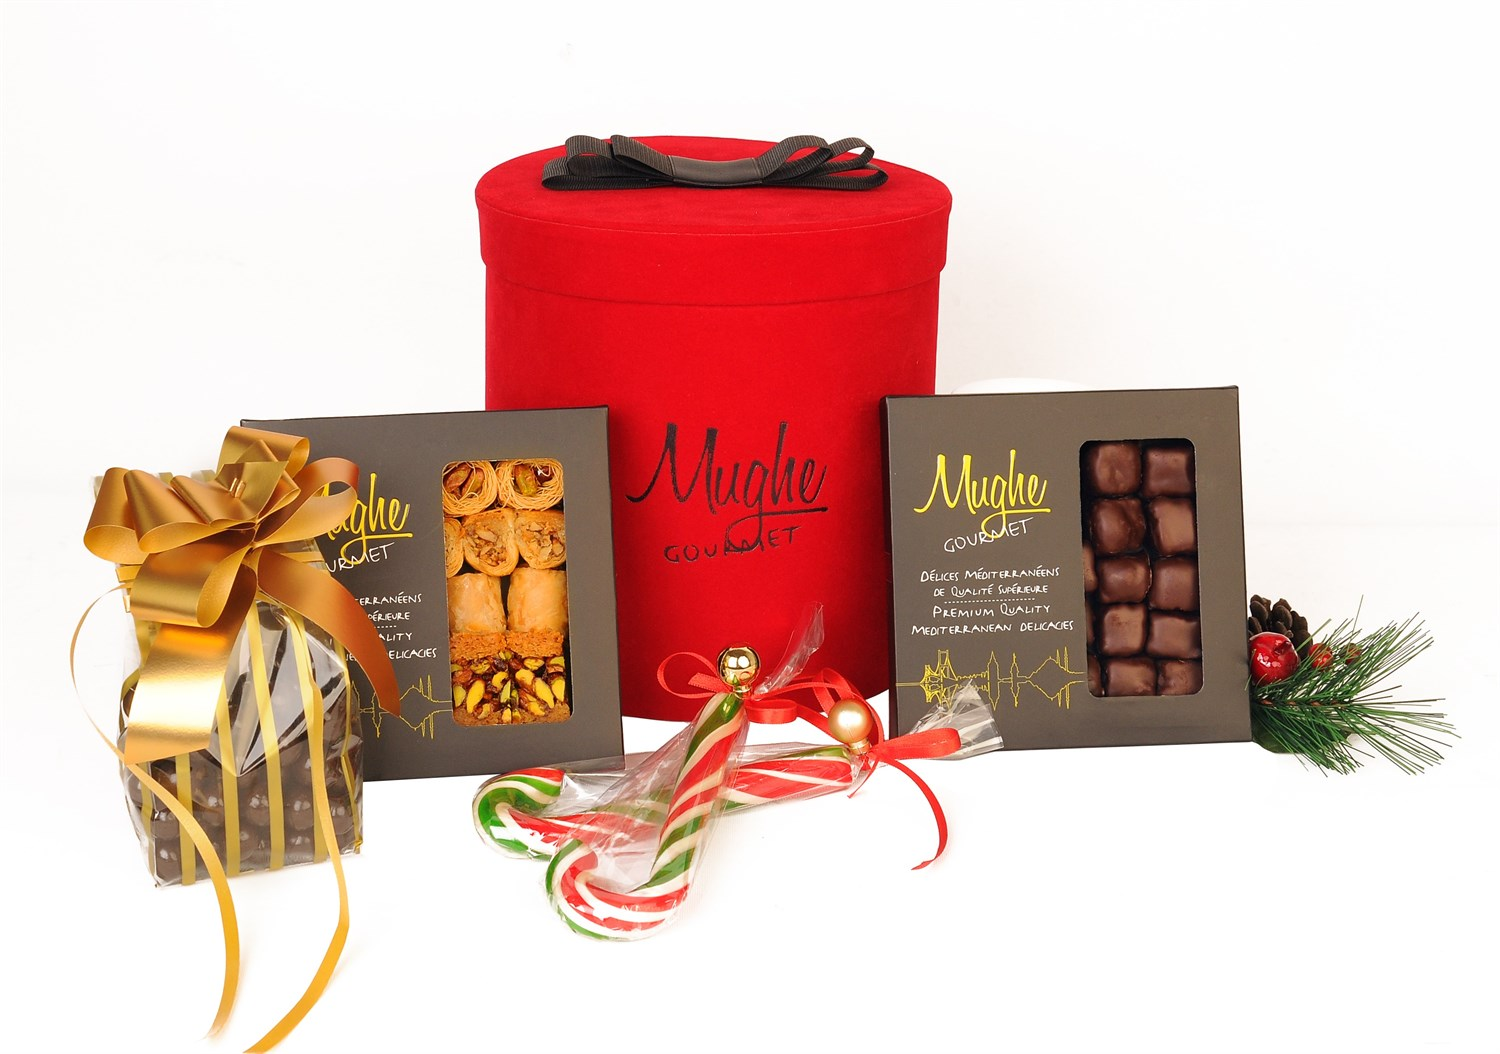 Mughe Gourmet Luxury Gift Box Hamper For Christmas Holiday Hampers Baskets Unique Boxes And Best Xmas Gifts Baskets